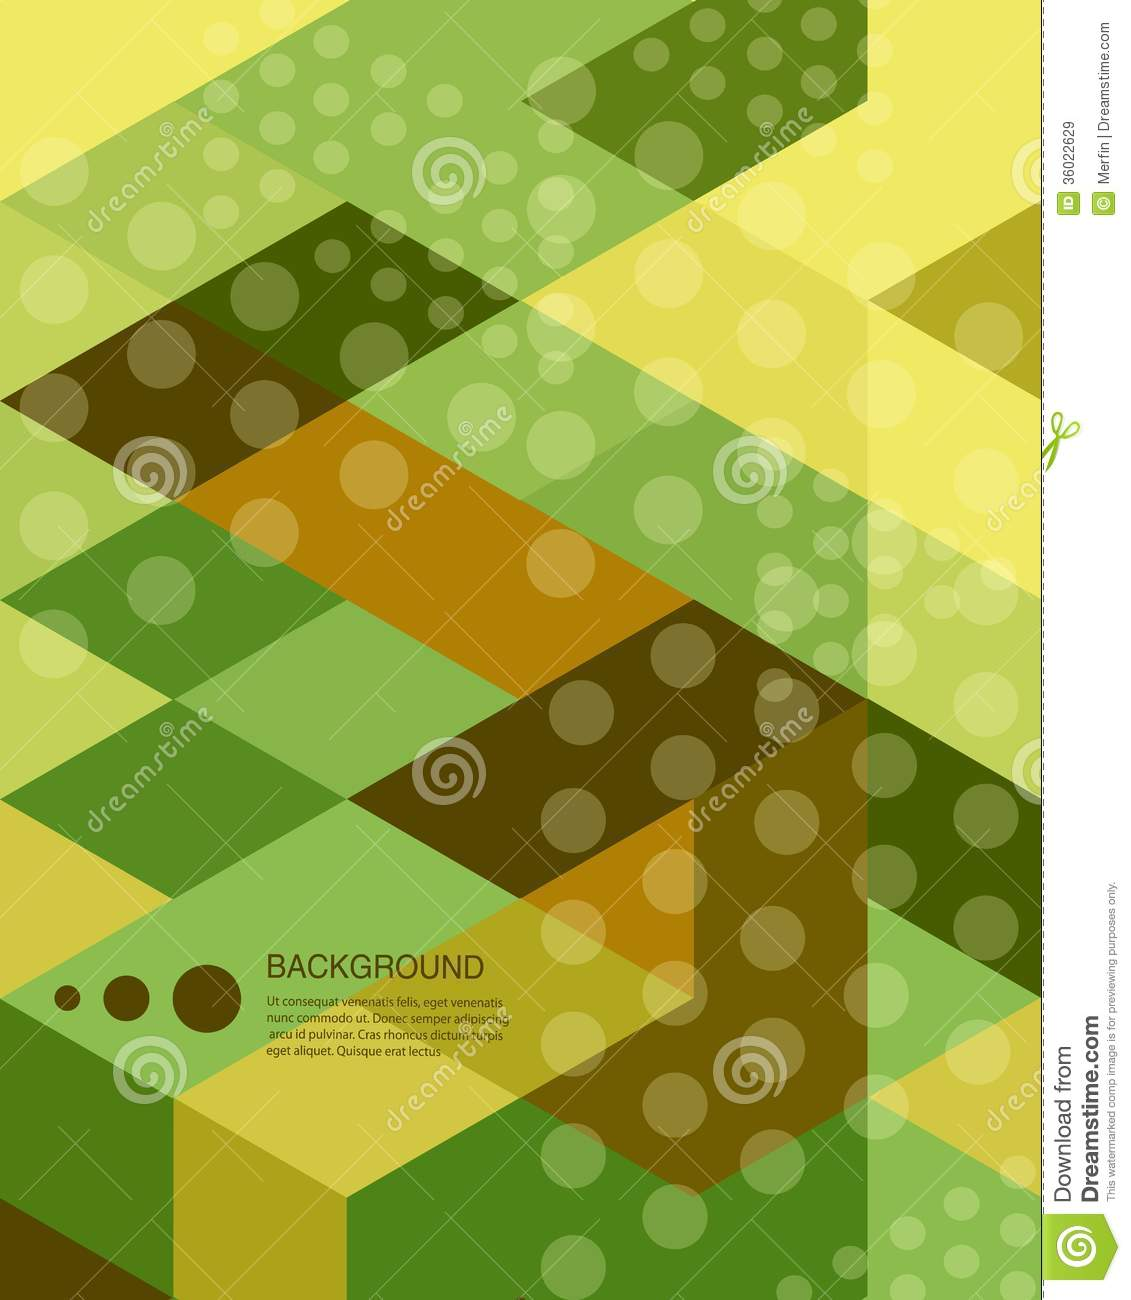 Book Cover Background Java : Book cover background royalty free stock images image